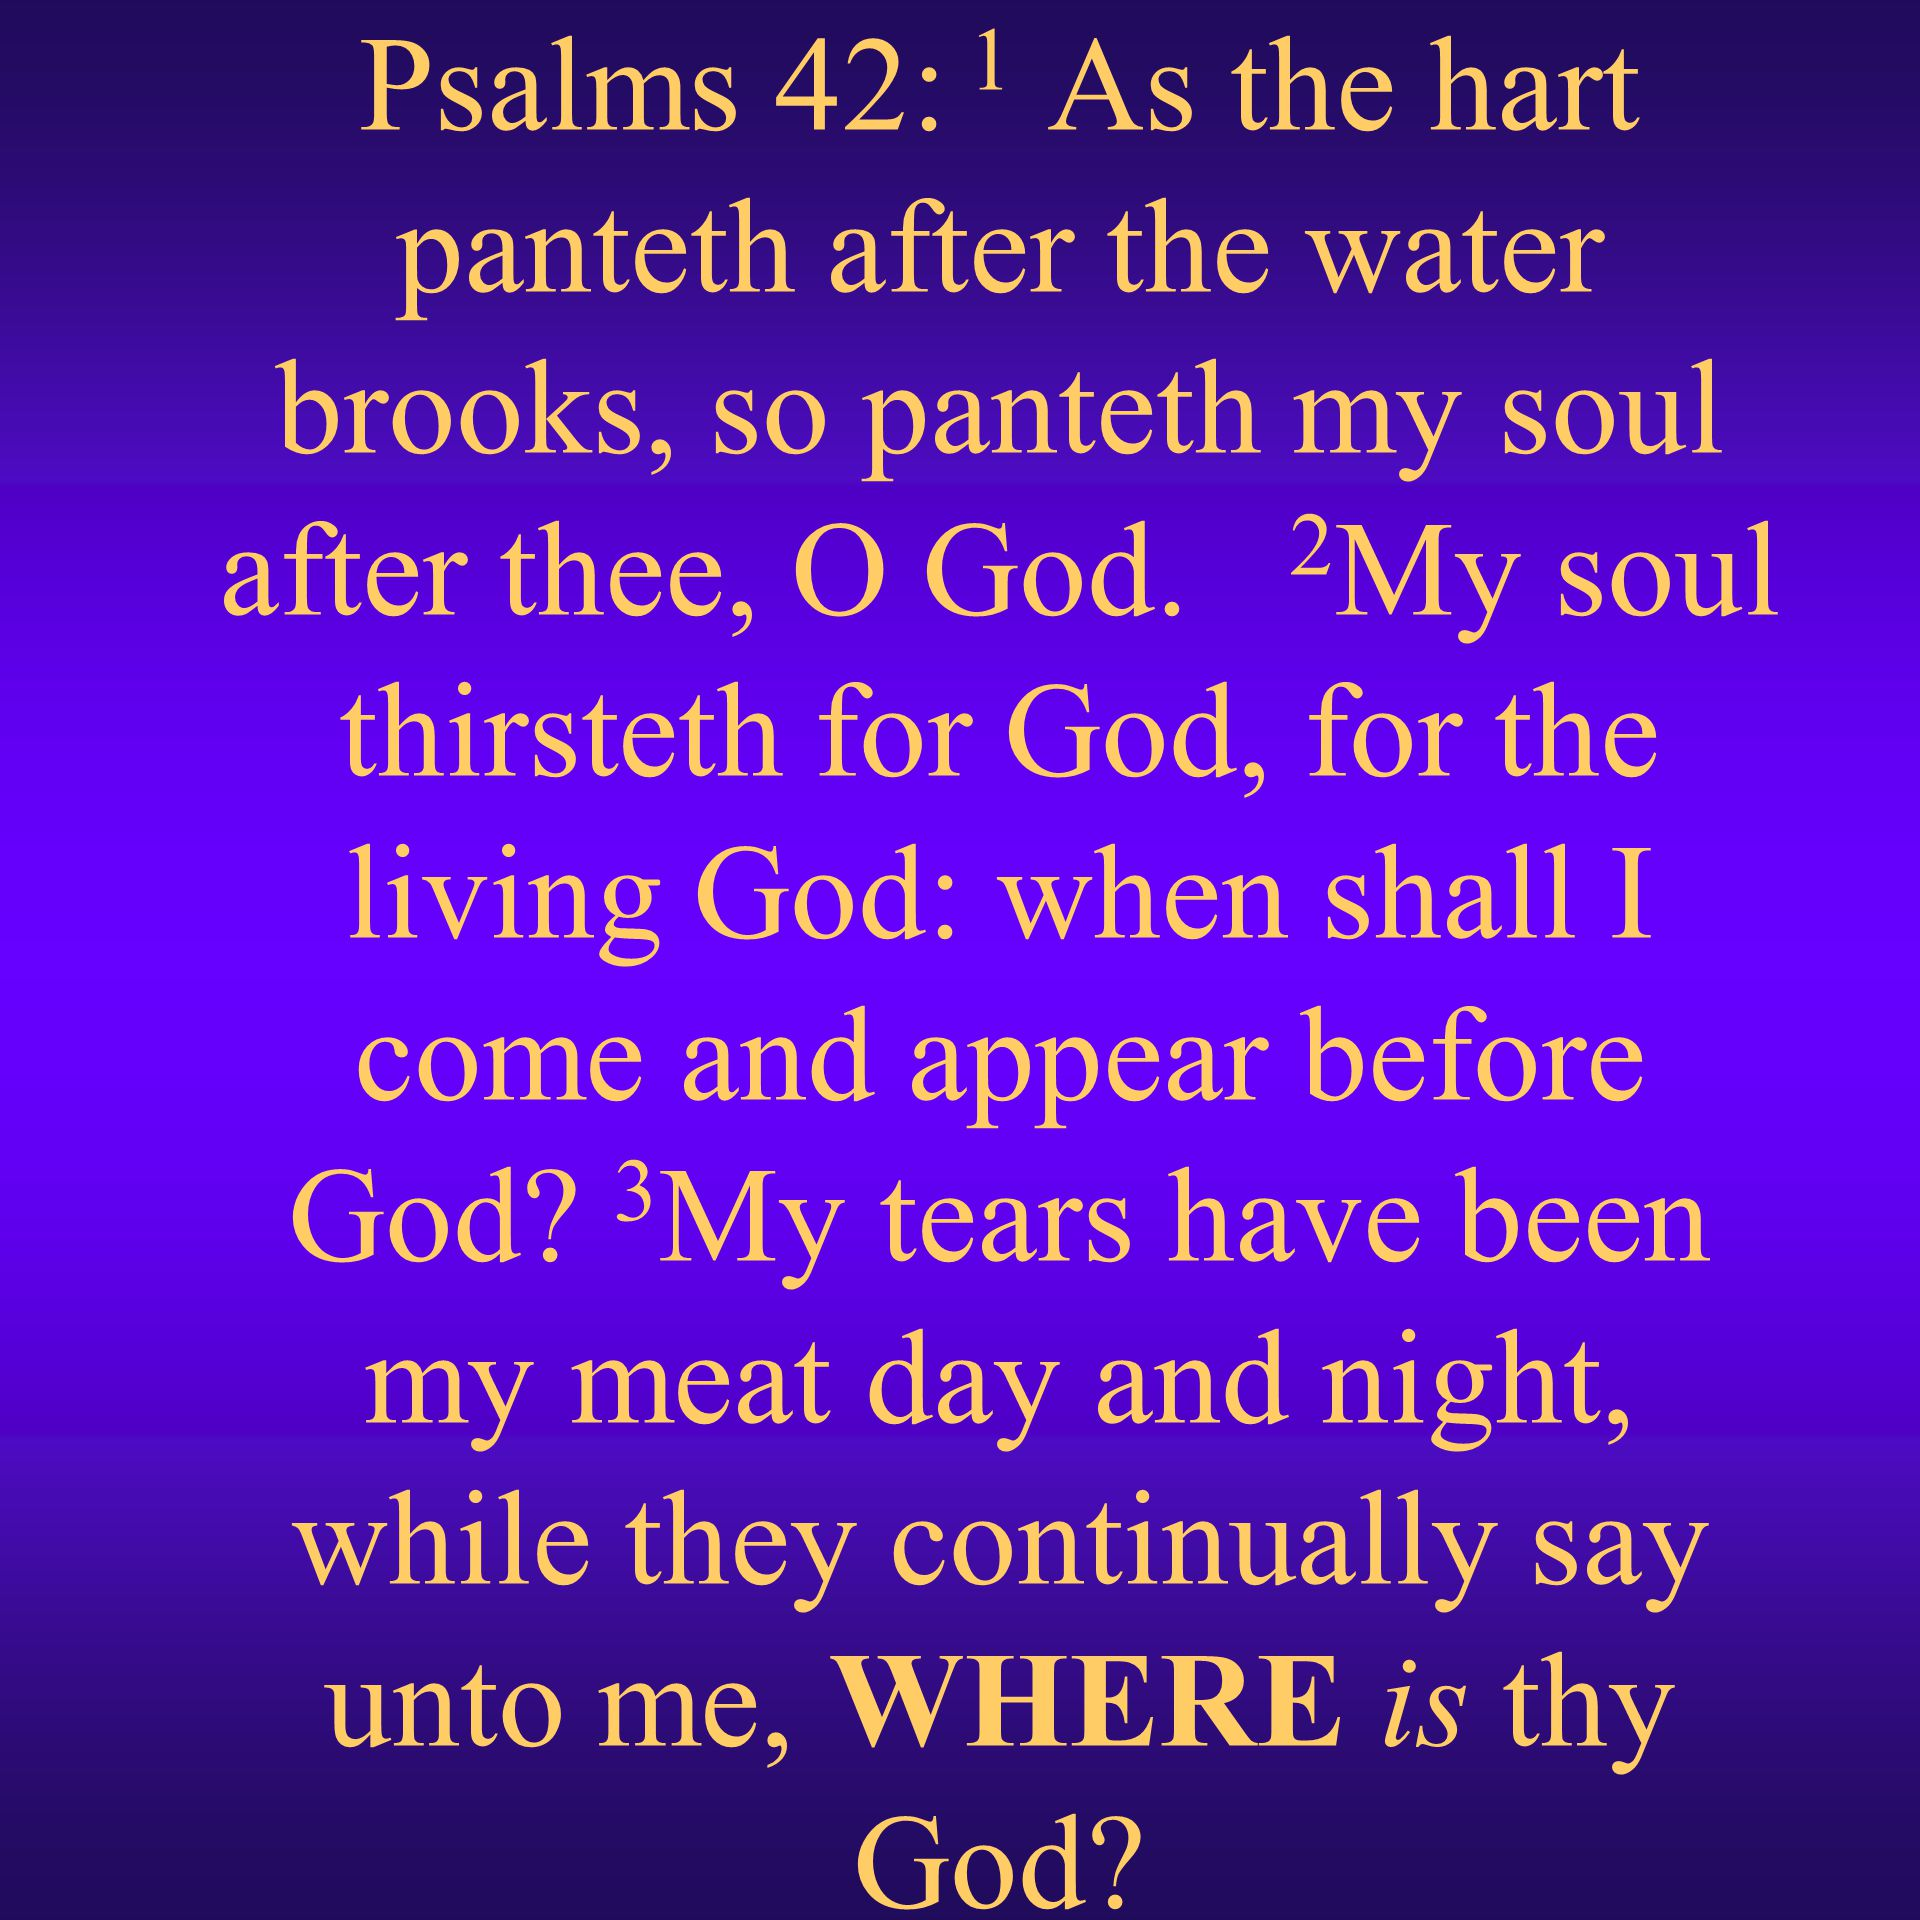 Psalms 42: 1 As the hart panteth after the water brooks, so panteth my soul after thee, O God.